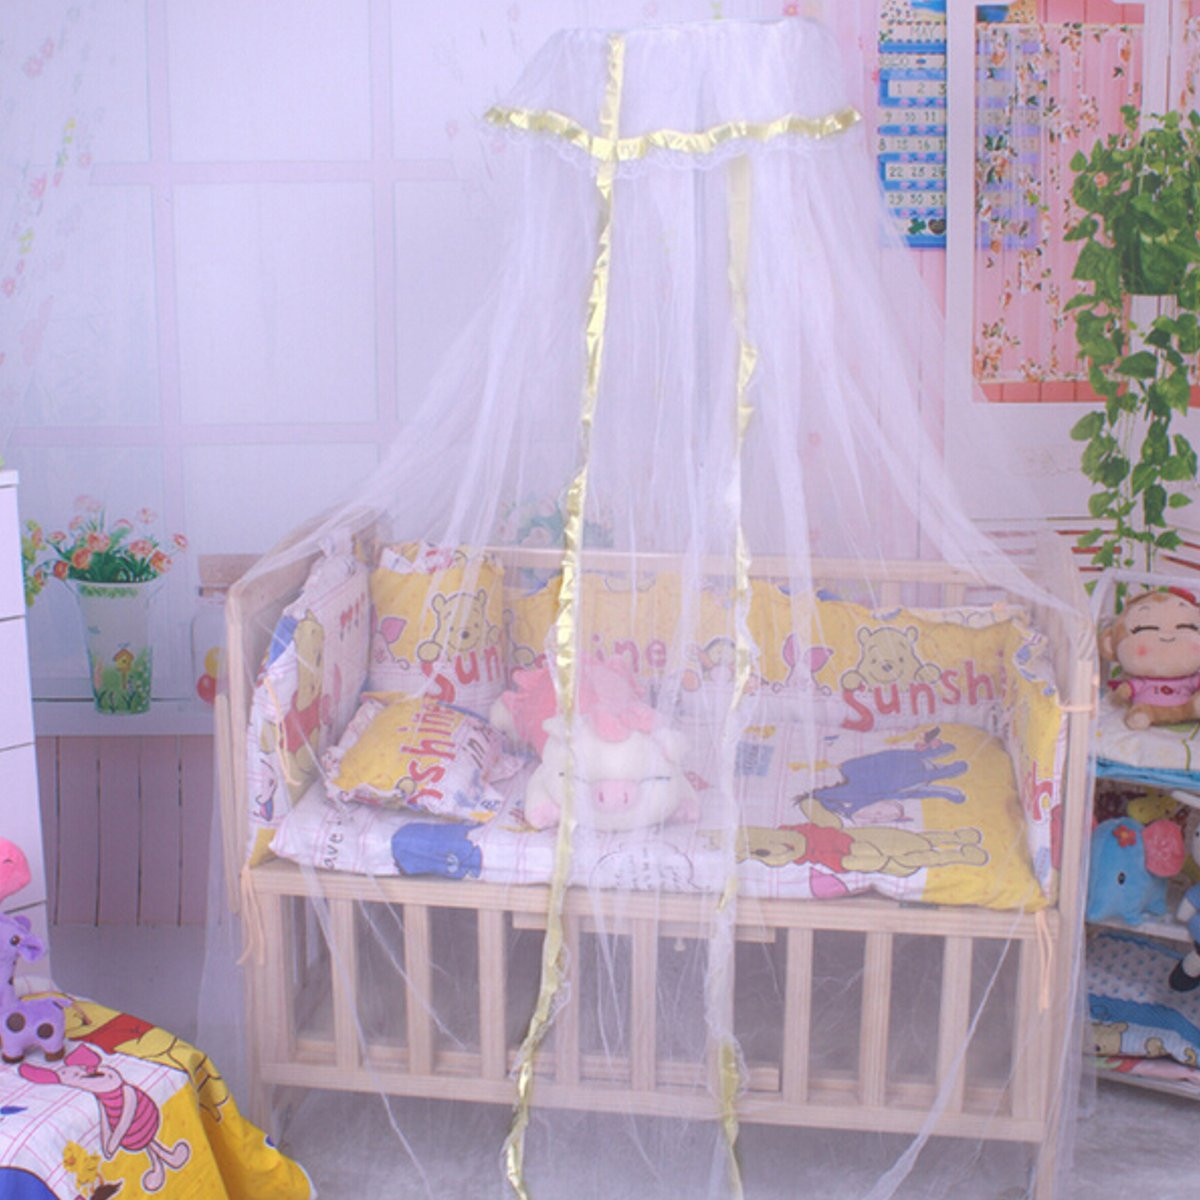 Baby bed that hooks to bed - Please Allow 1 5cm Error Due To Manual Measurement And Make Sure You Do Not Mind Before Ordering Batches From Different Suppliers So The Size Will